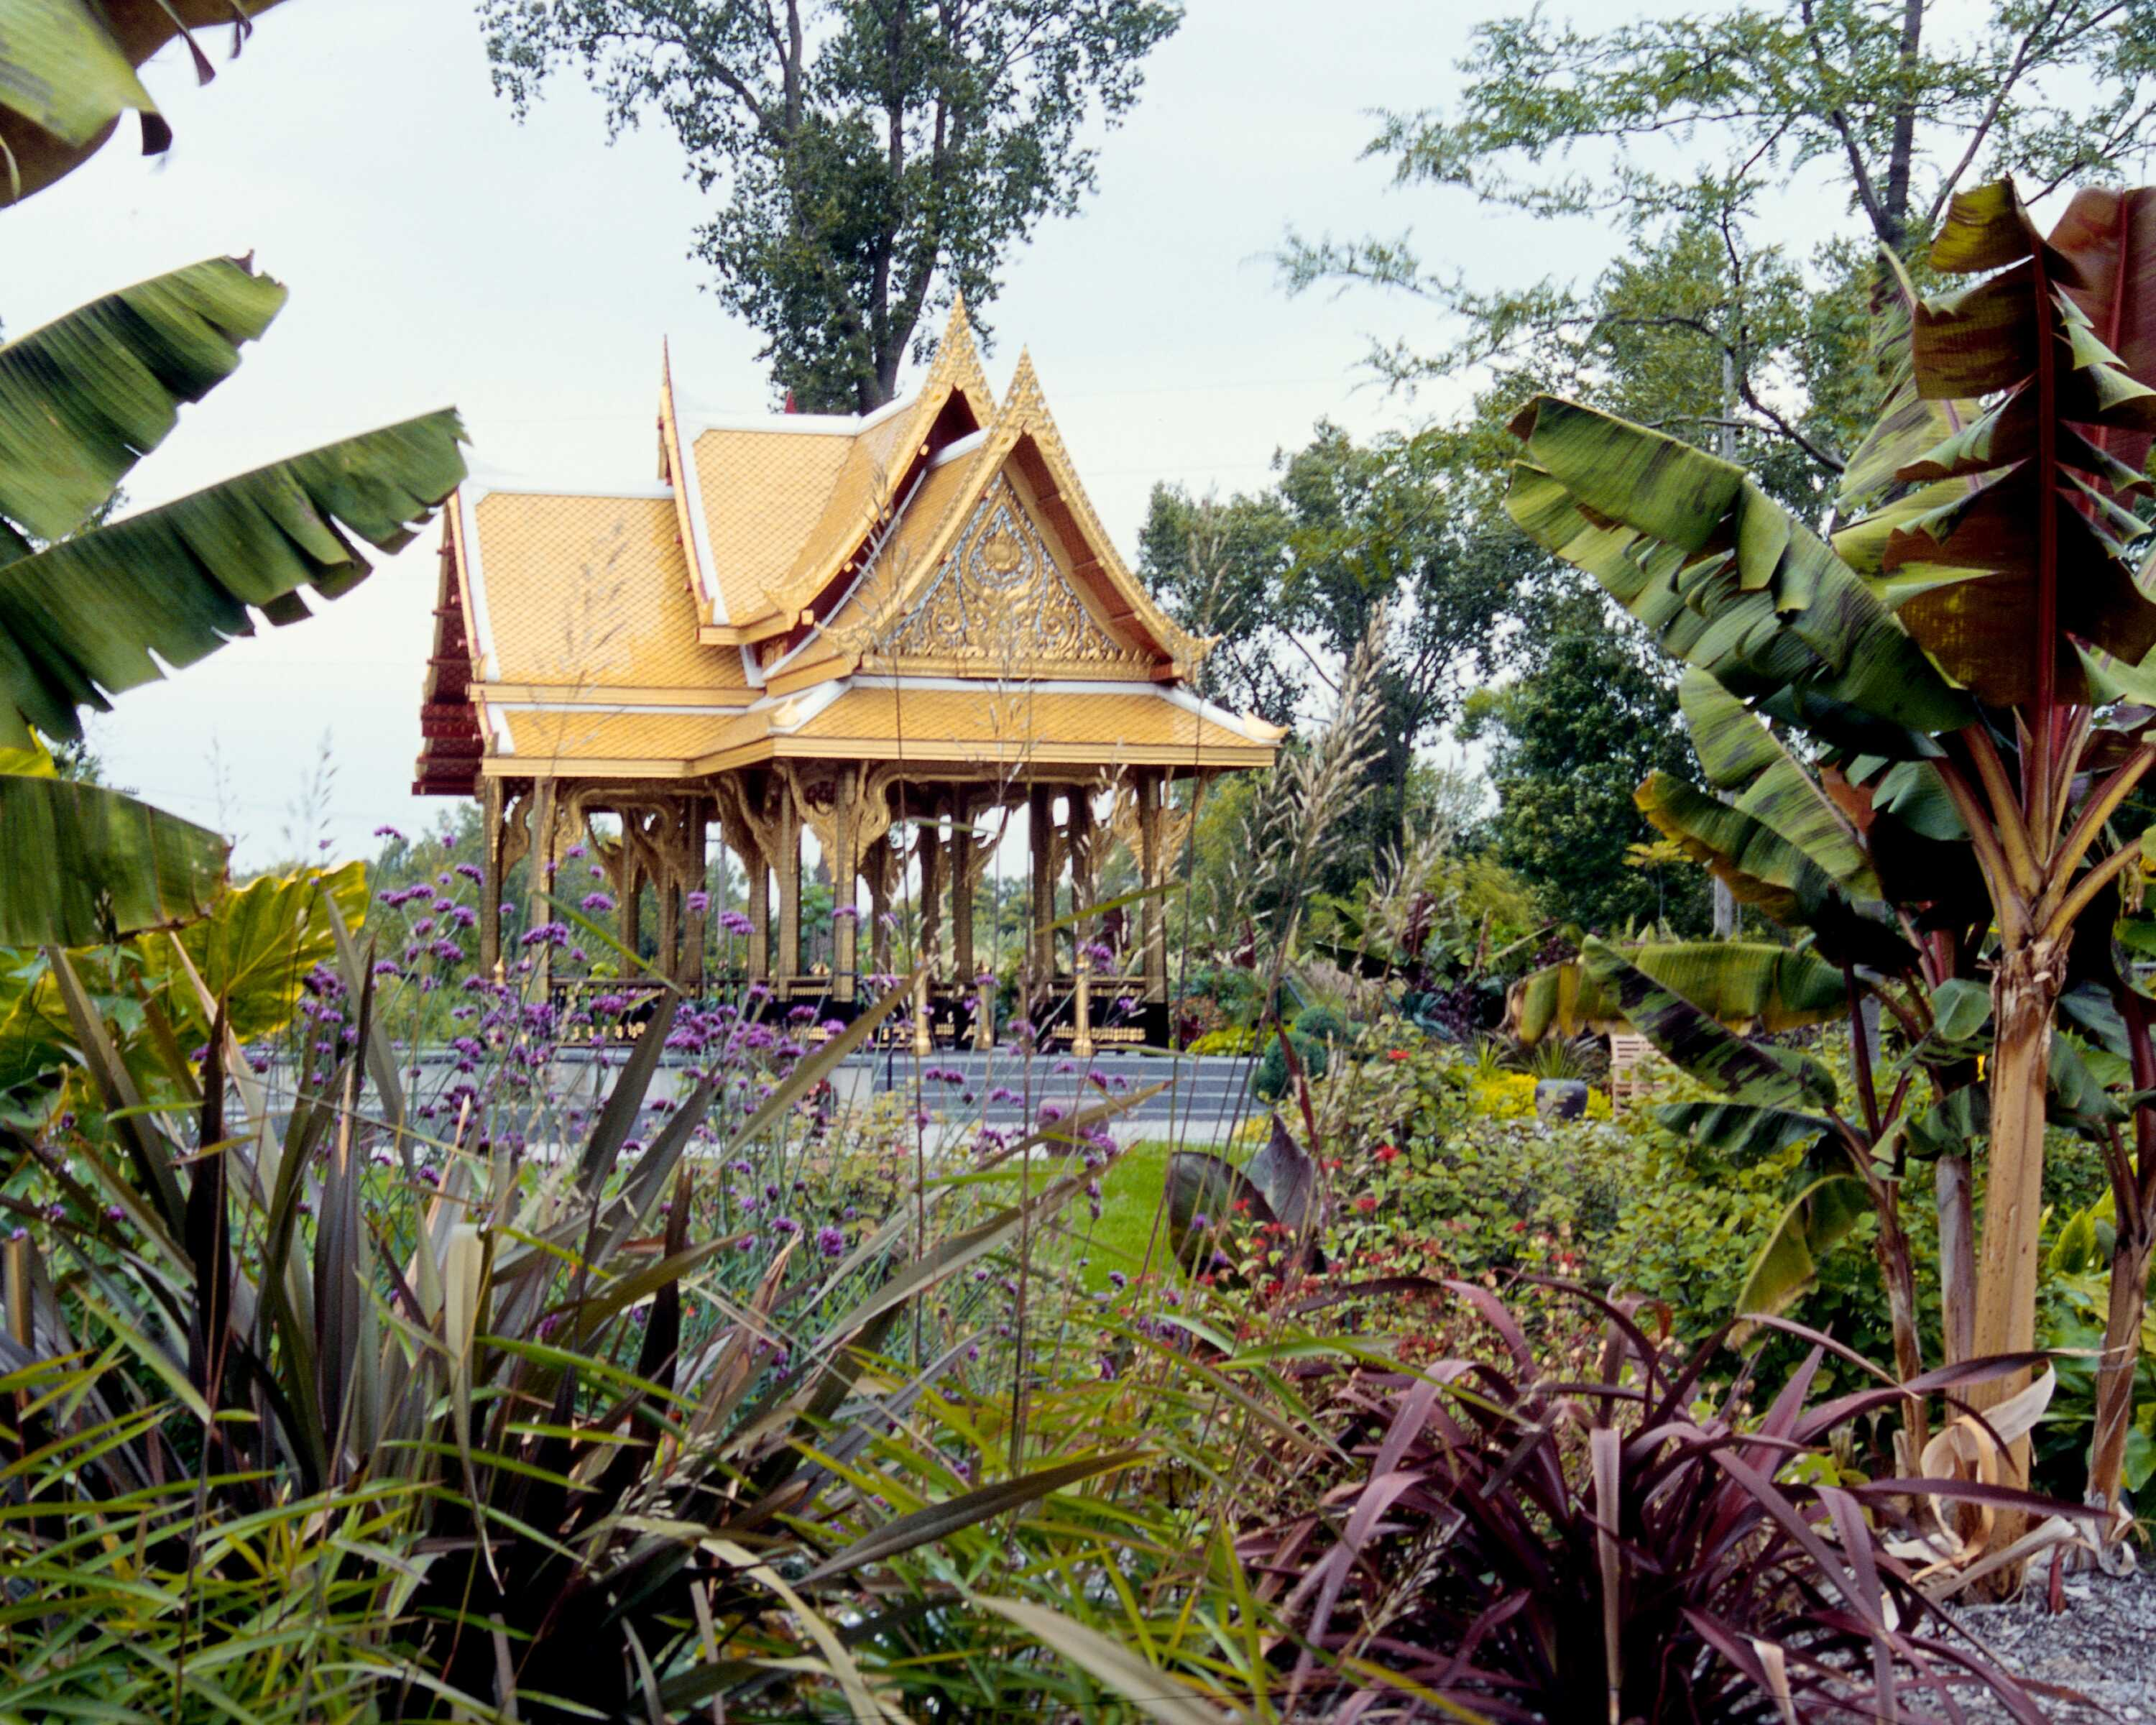 The Thai Garden showcases a gifted sala, or pavilion, with a custom stone-lined reflecting pool surrounding the pavilion platform and a carefully curated selection of plant material to evoke the lush tropical landscapes of Thailand.